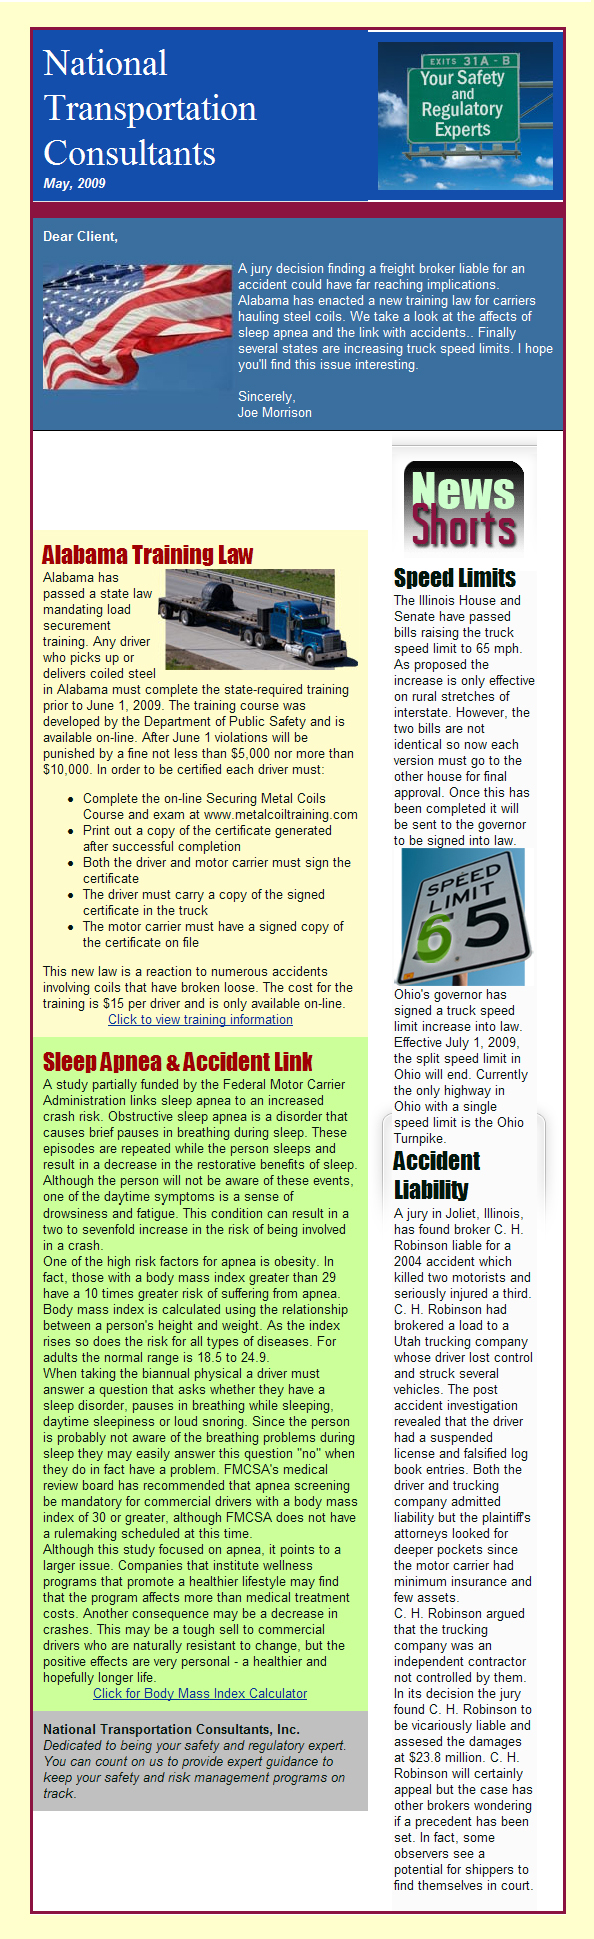 Accident Liability Expands, Sleep Apnea & Crashes, Alabama Enacts Training Law